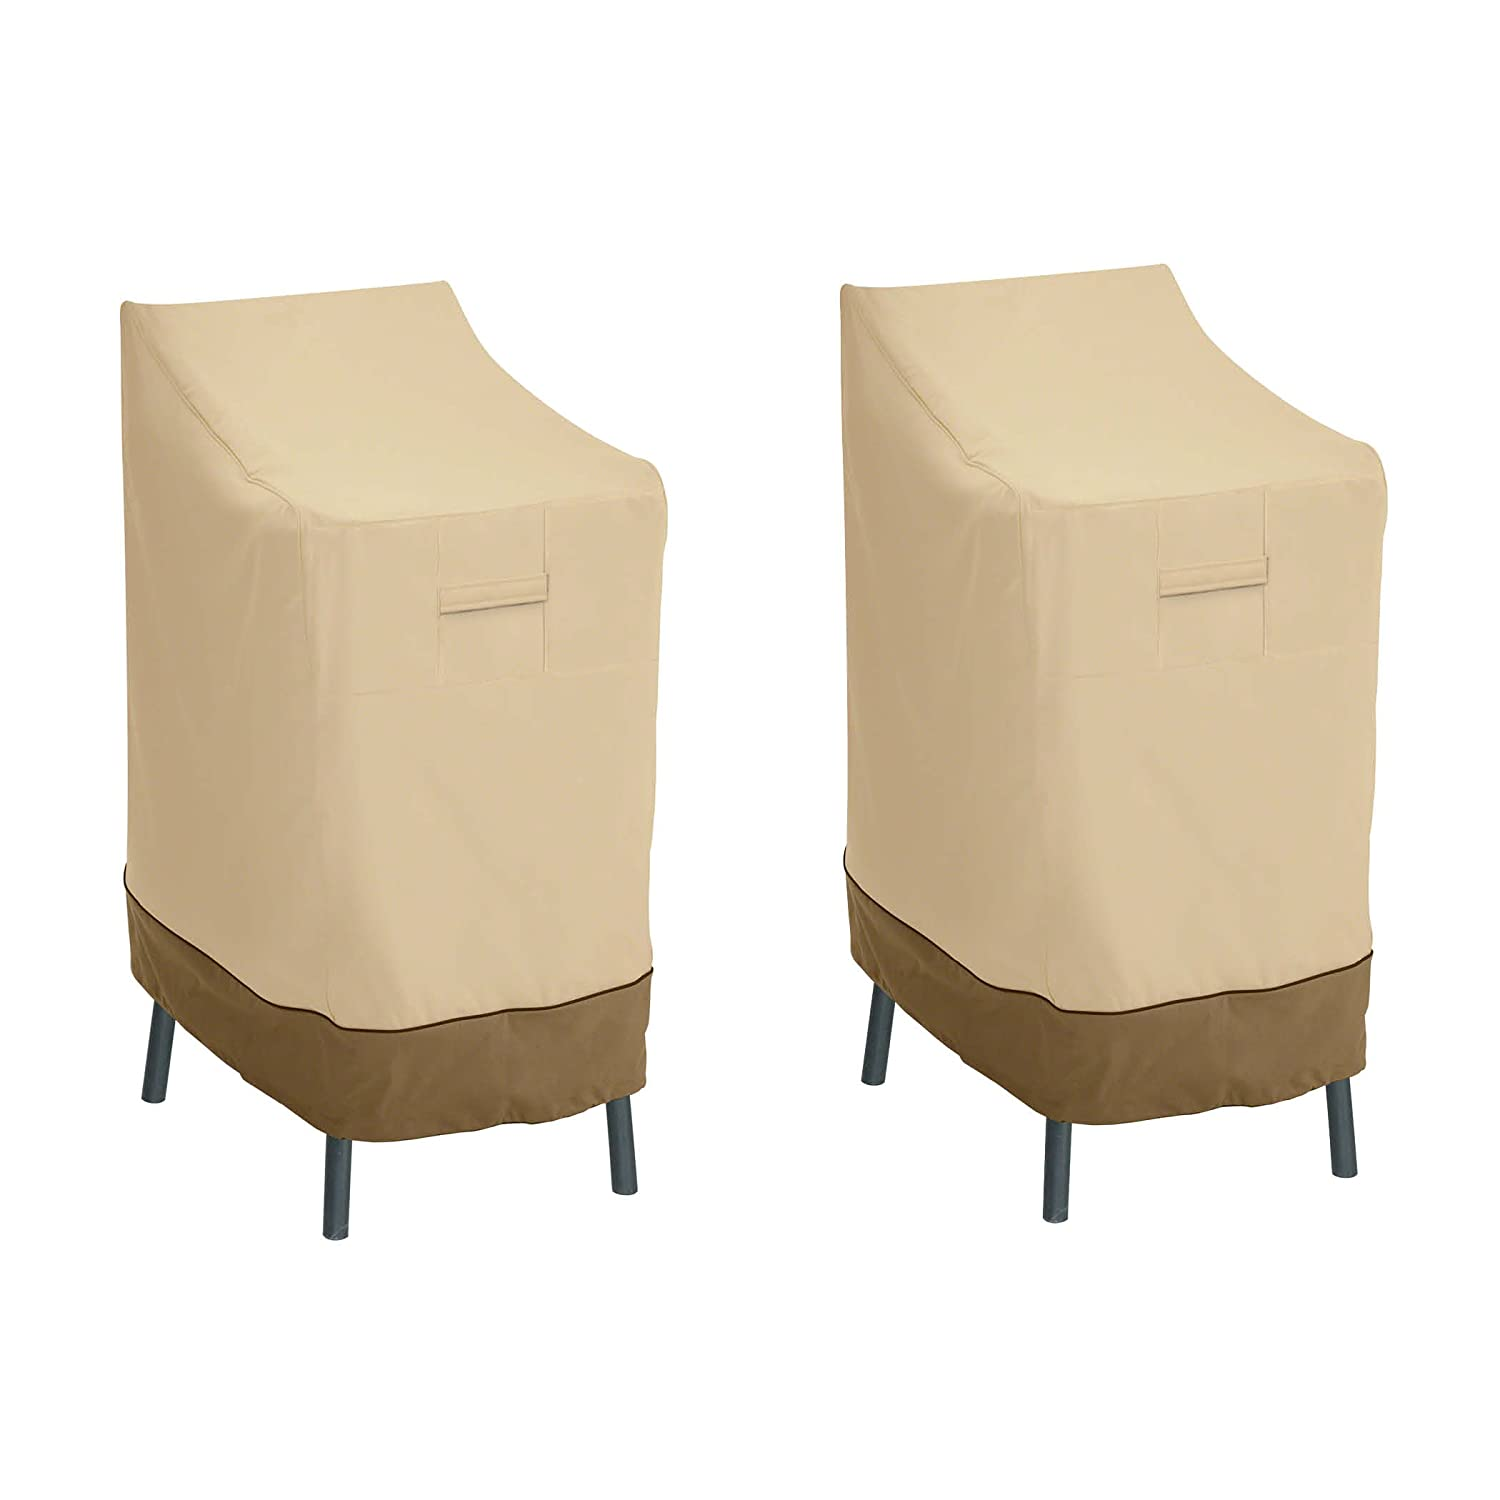 4-Pack Classic Accessories 55-412-011501-4PK Veranda Deep Seated Patio Lounge Chair Cover